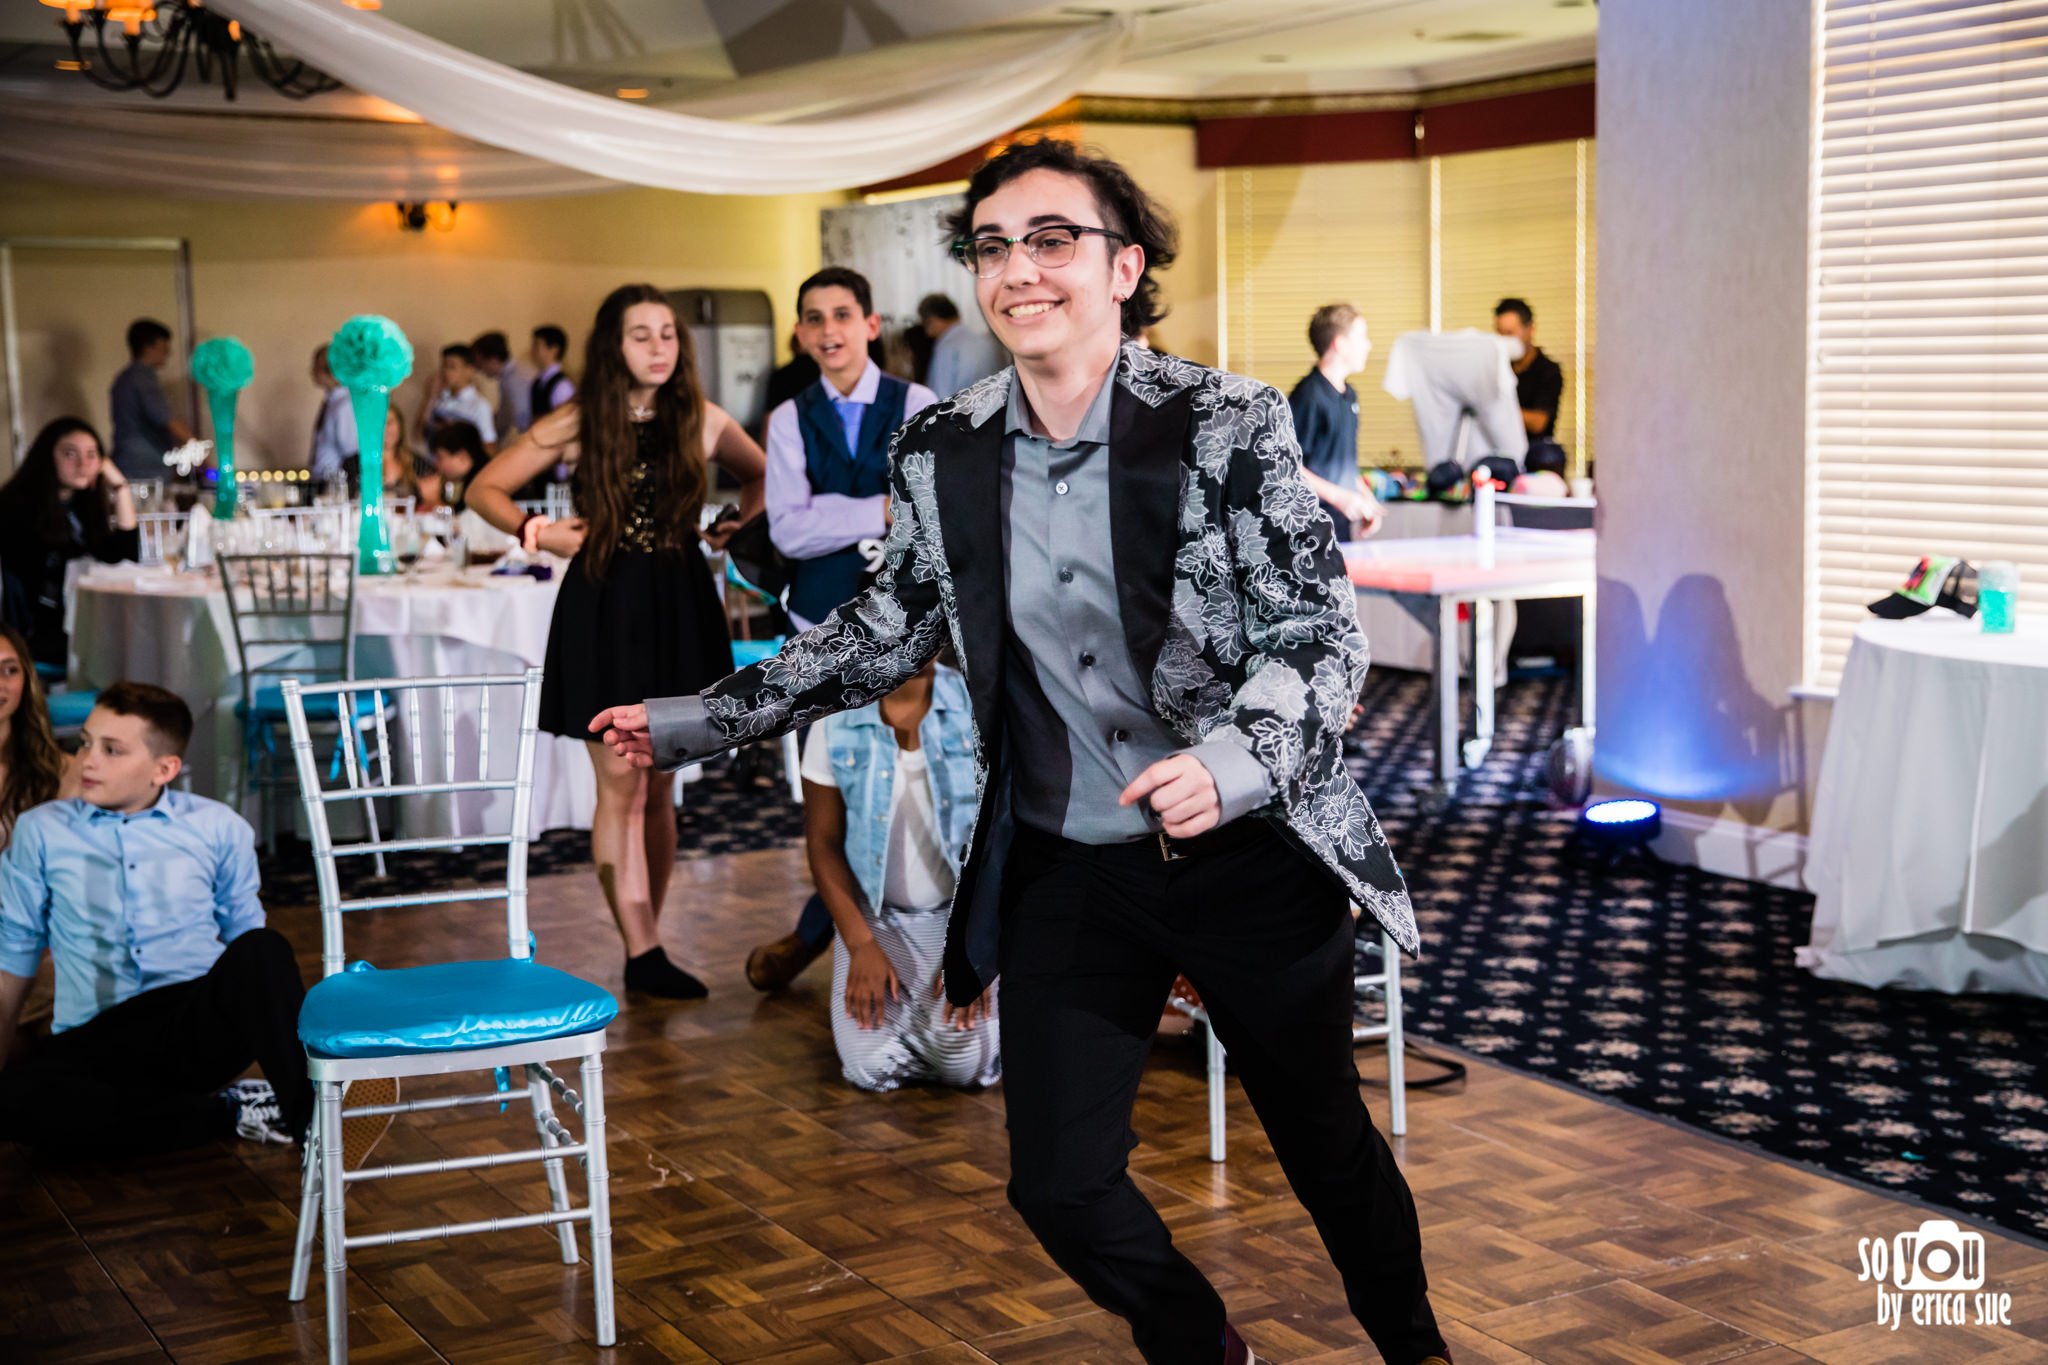 so-you-by-erica-sue-bnai-mitzvah-photographer-delray-beach-golf-club-fl-3625.jpg